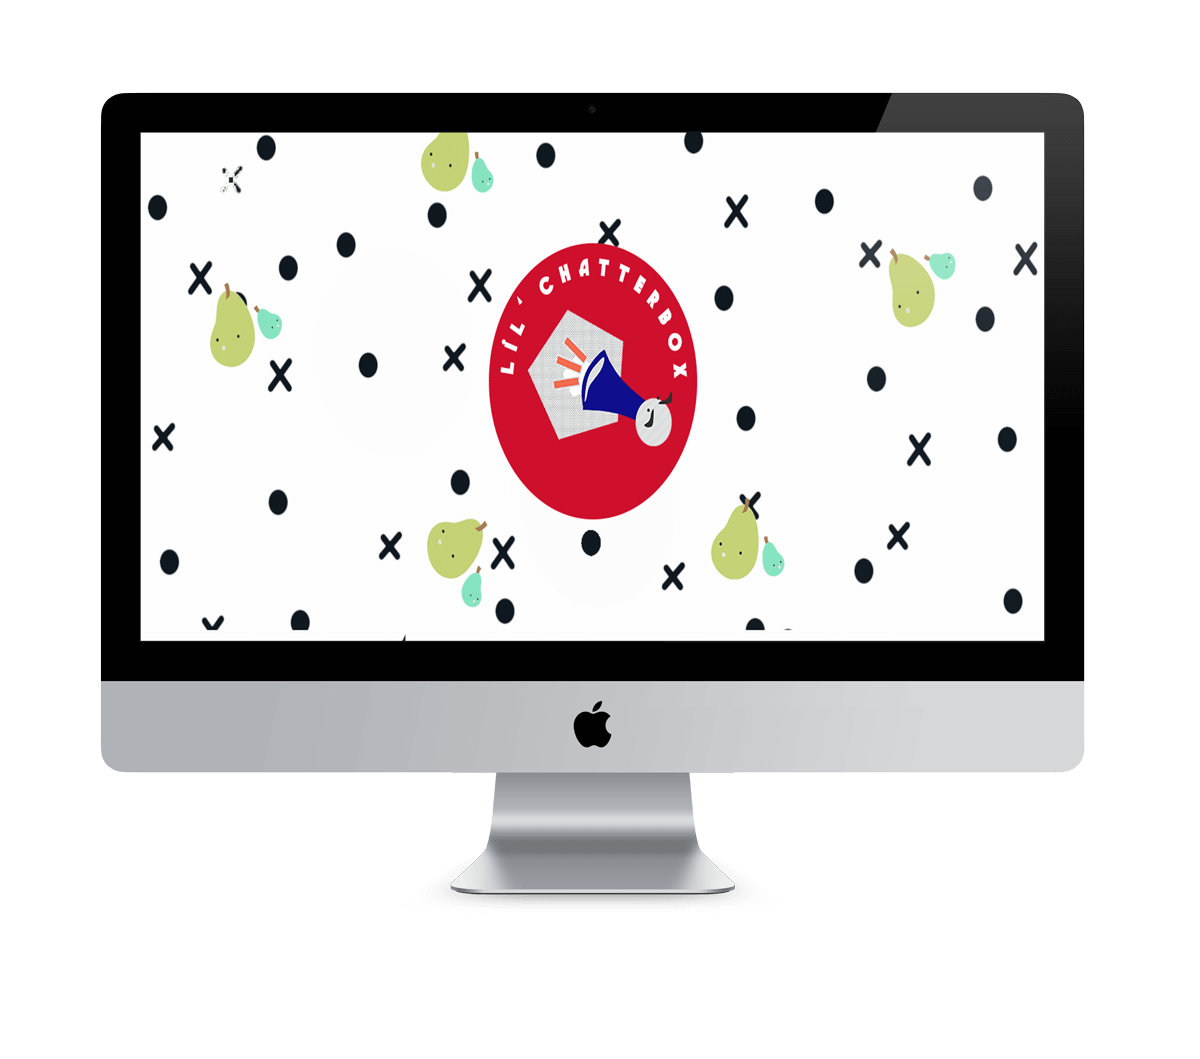 Lil' Chatterbox Online Course